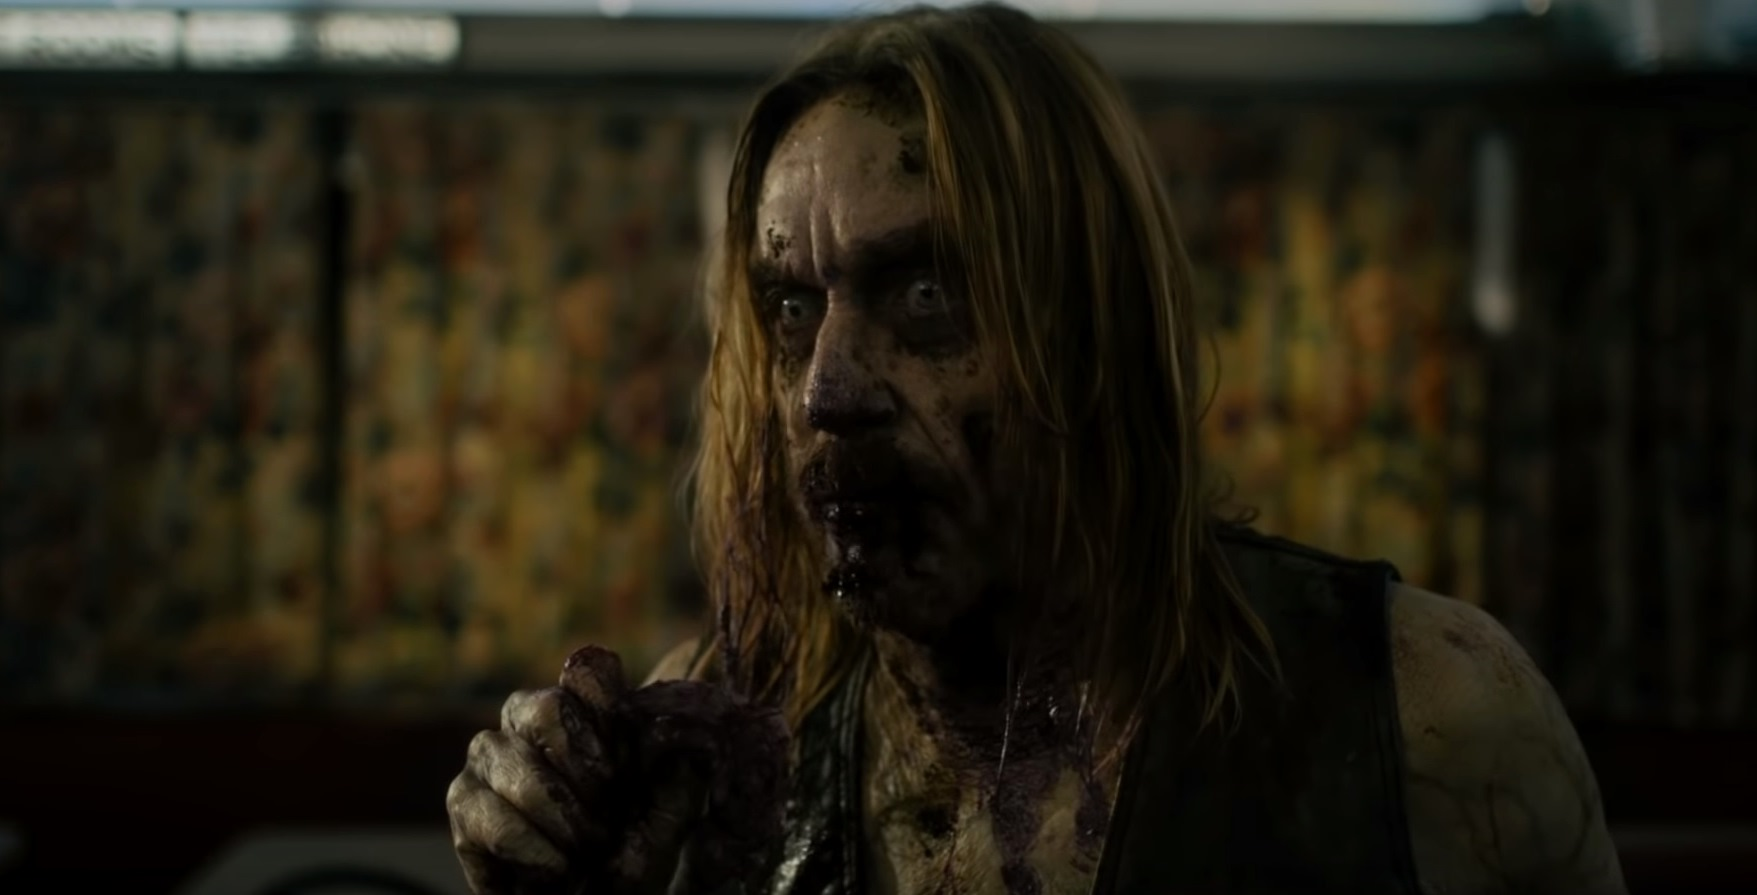 Iggy Pop as a coffee-drinking zombie in The Dead Don't Die (2019)